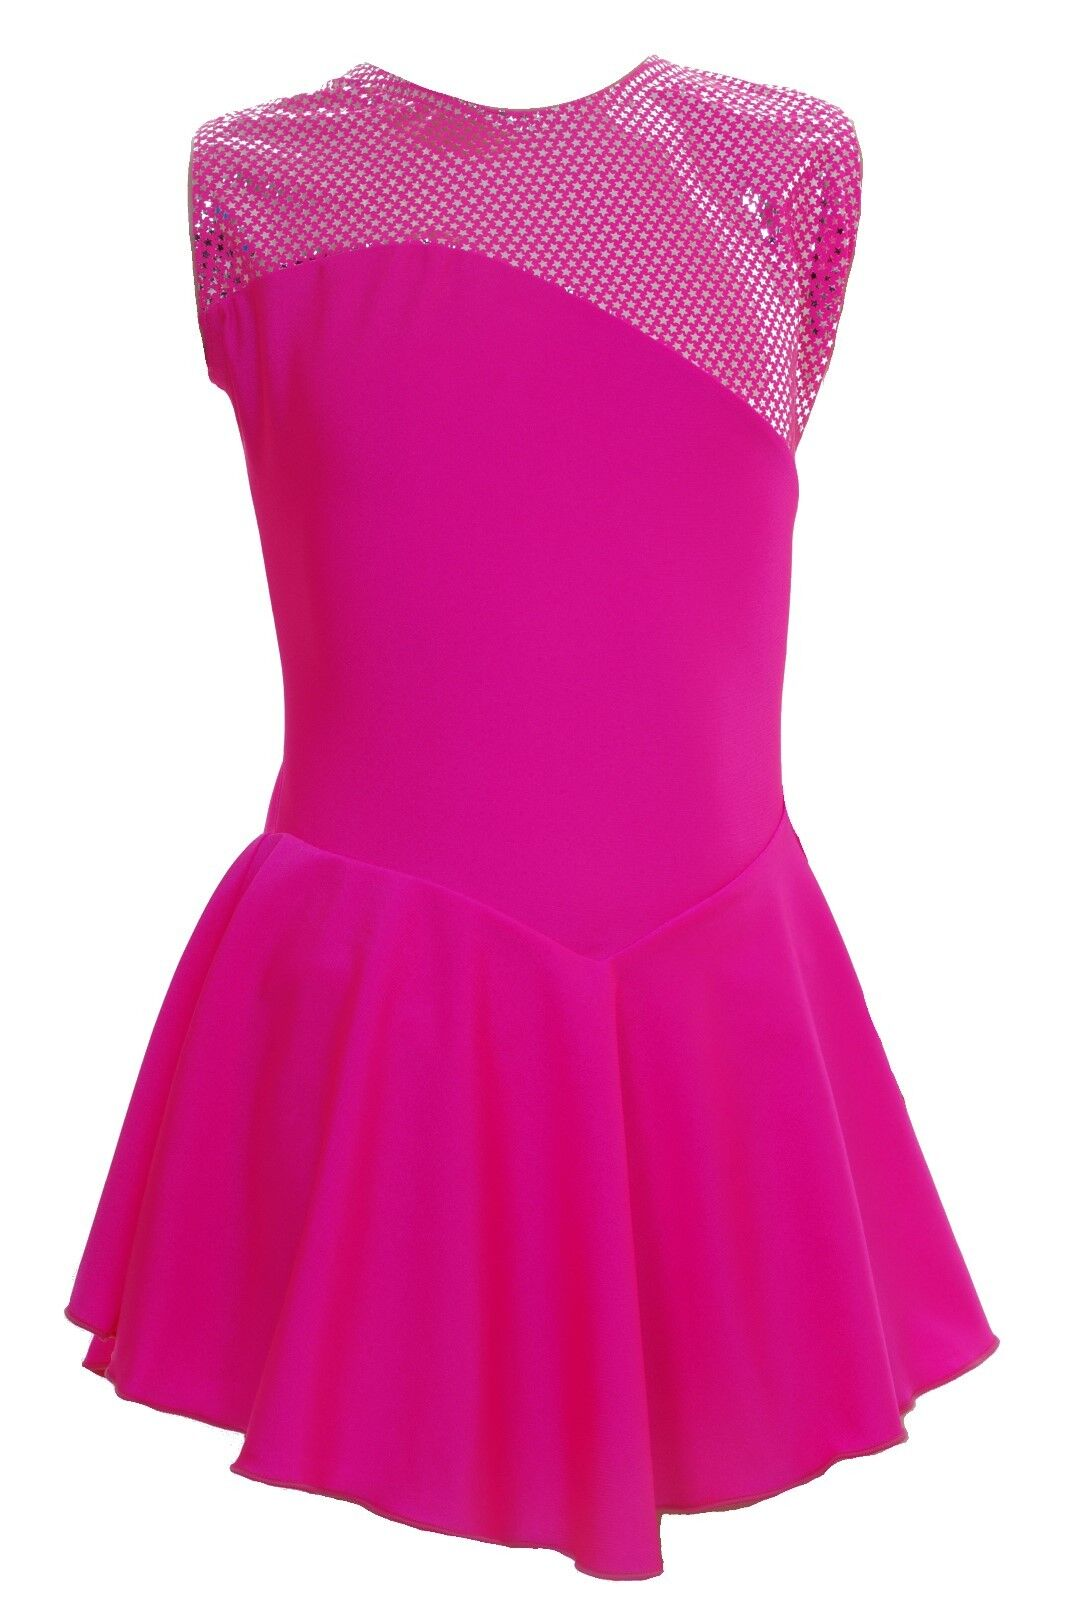 Skating Dress -TOFEE PINK LYCRA   Metalic top NO SLEEVE ALL SIZES AVAILABLE